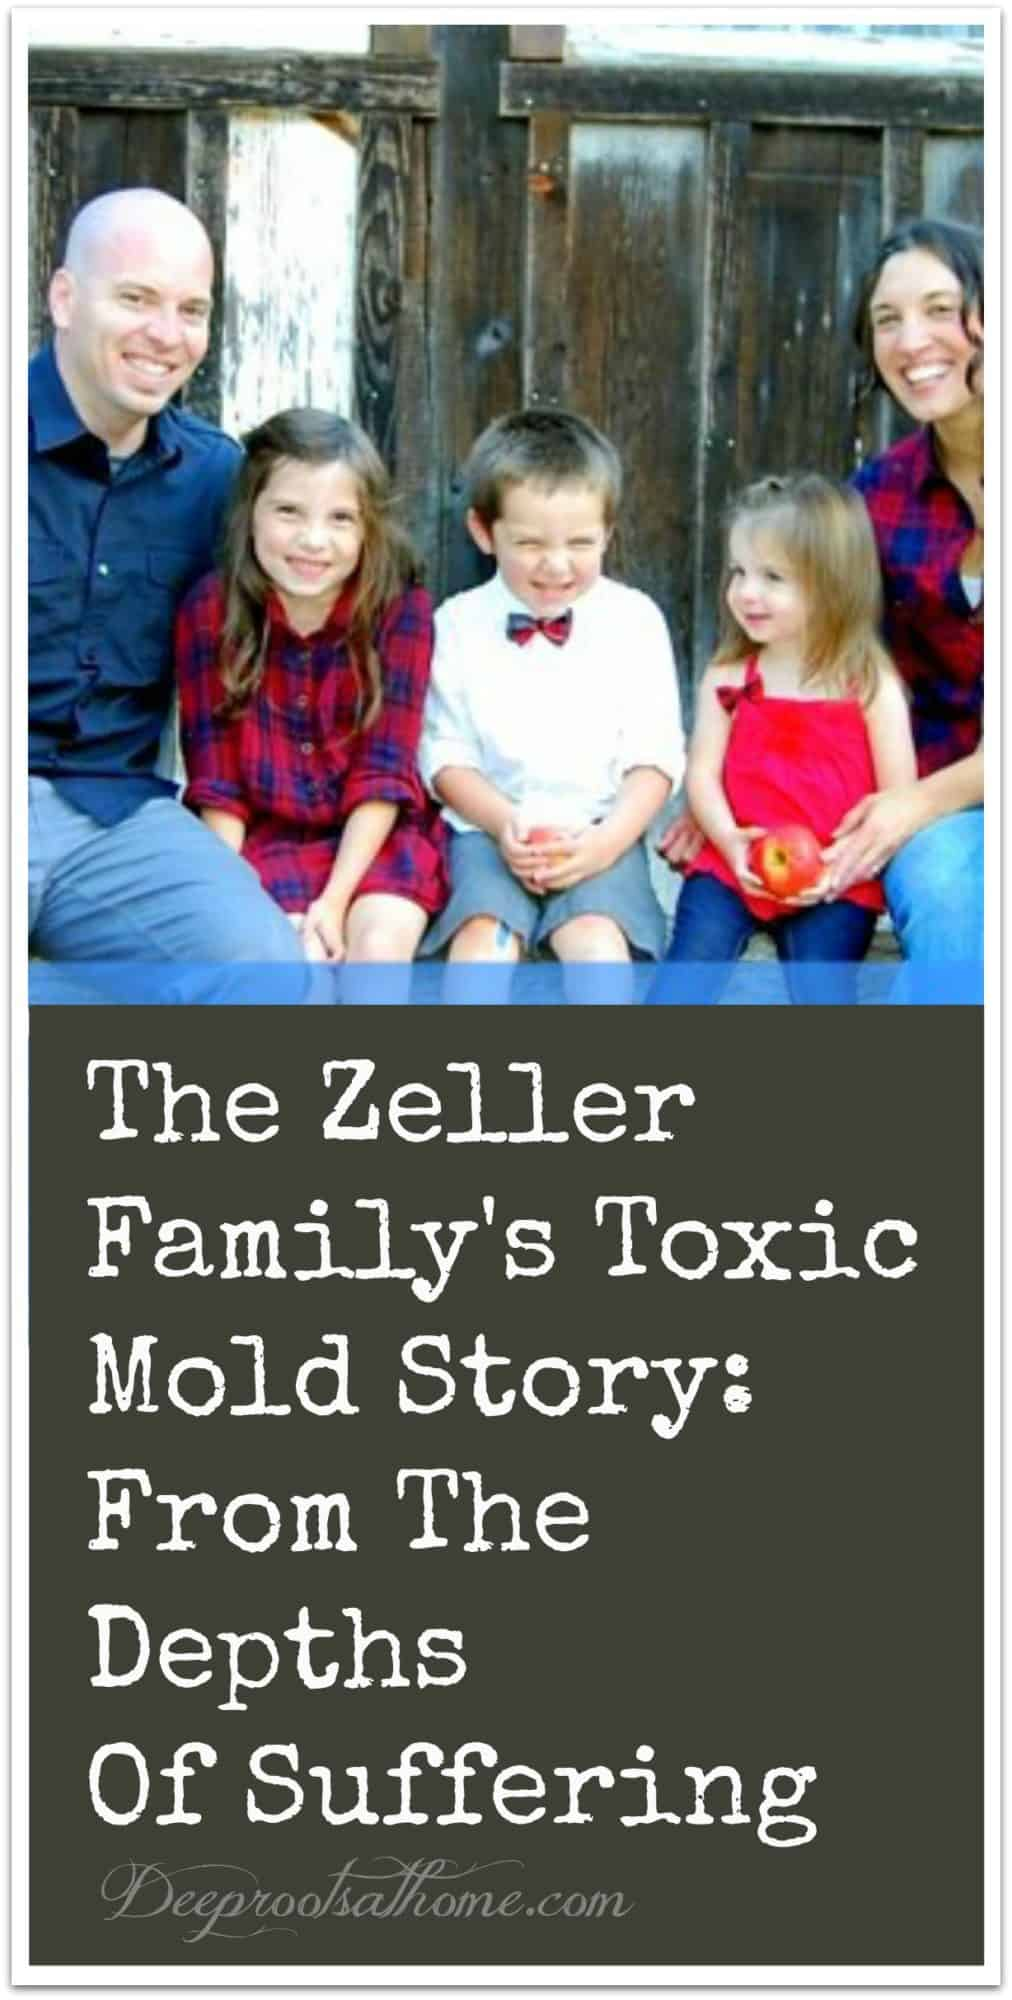 The Zeller Family's Toxic Mold Story: From The Depths Of Suffering